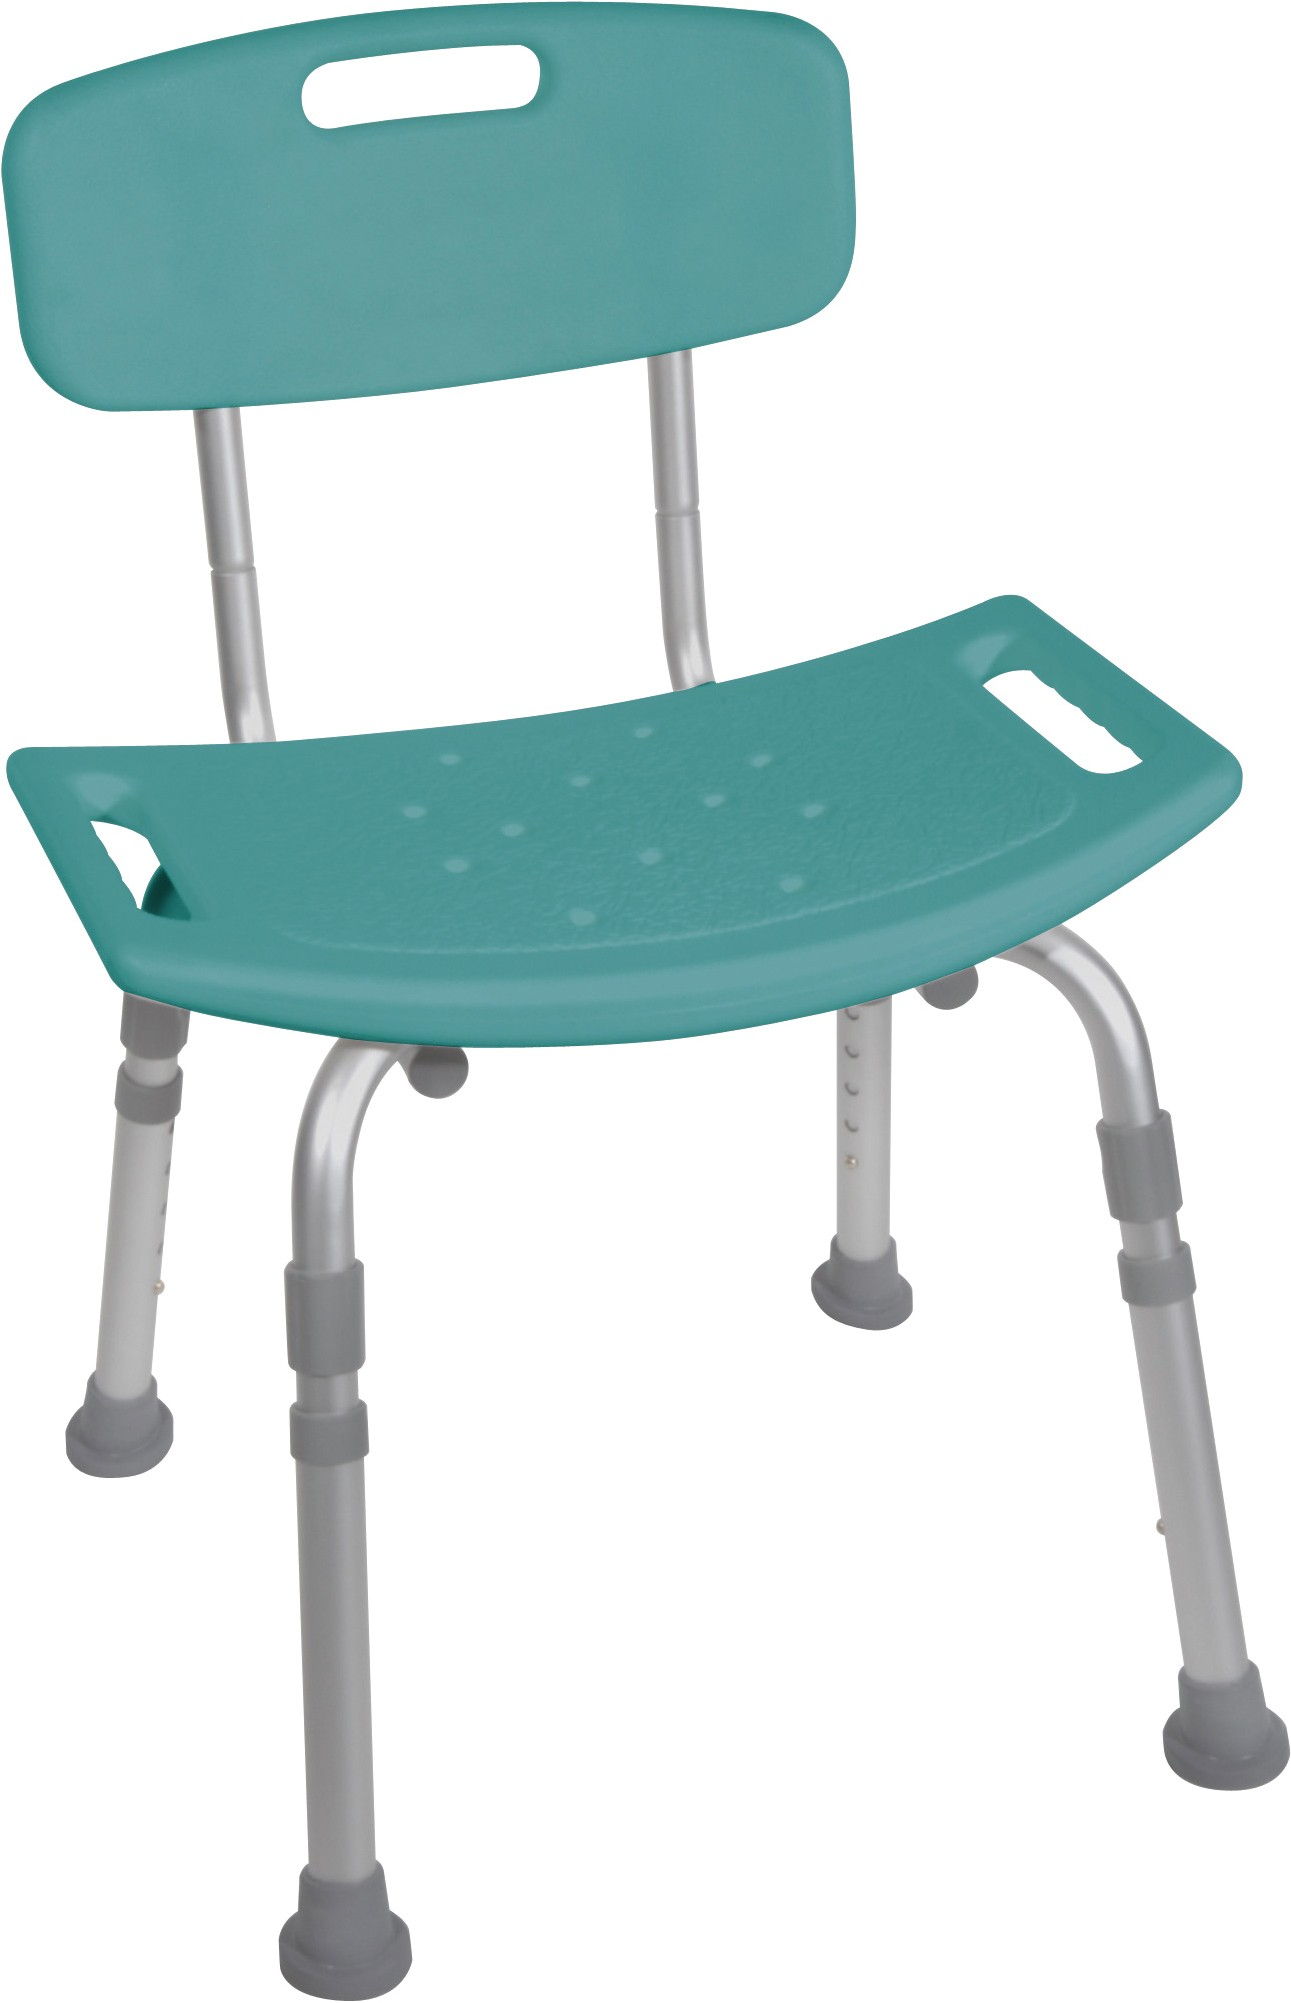 Deluxe Aluminum Bath Chair - Glenerinpharmacy